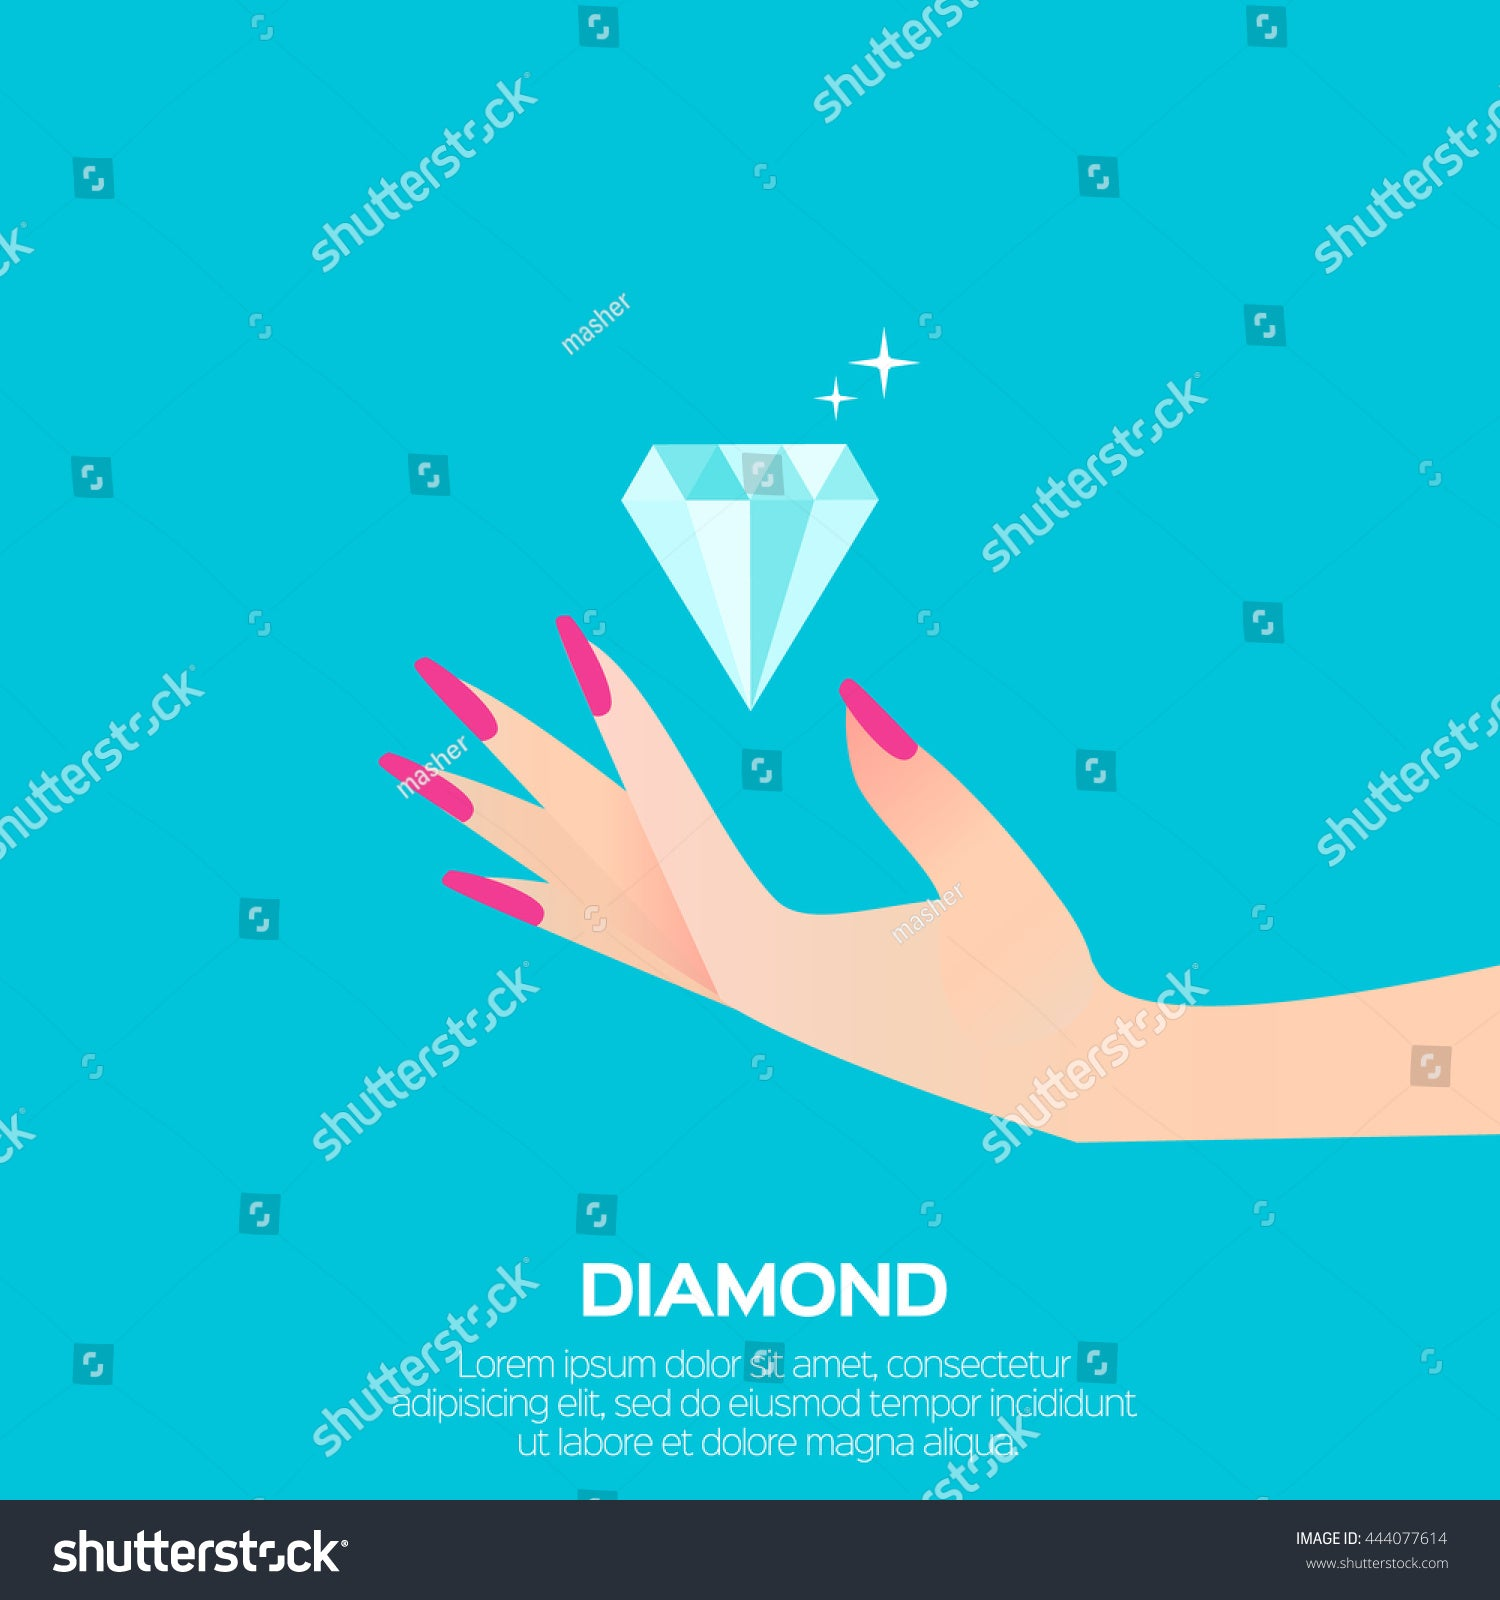 Secrets to keeping Diamonds Shining